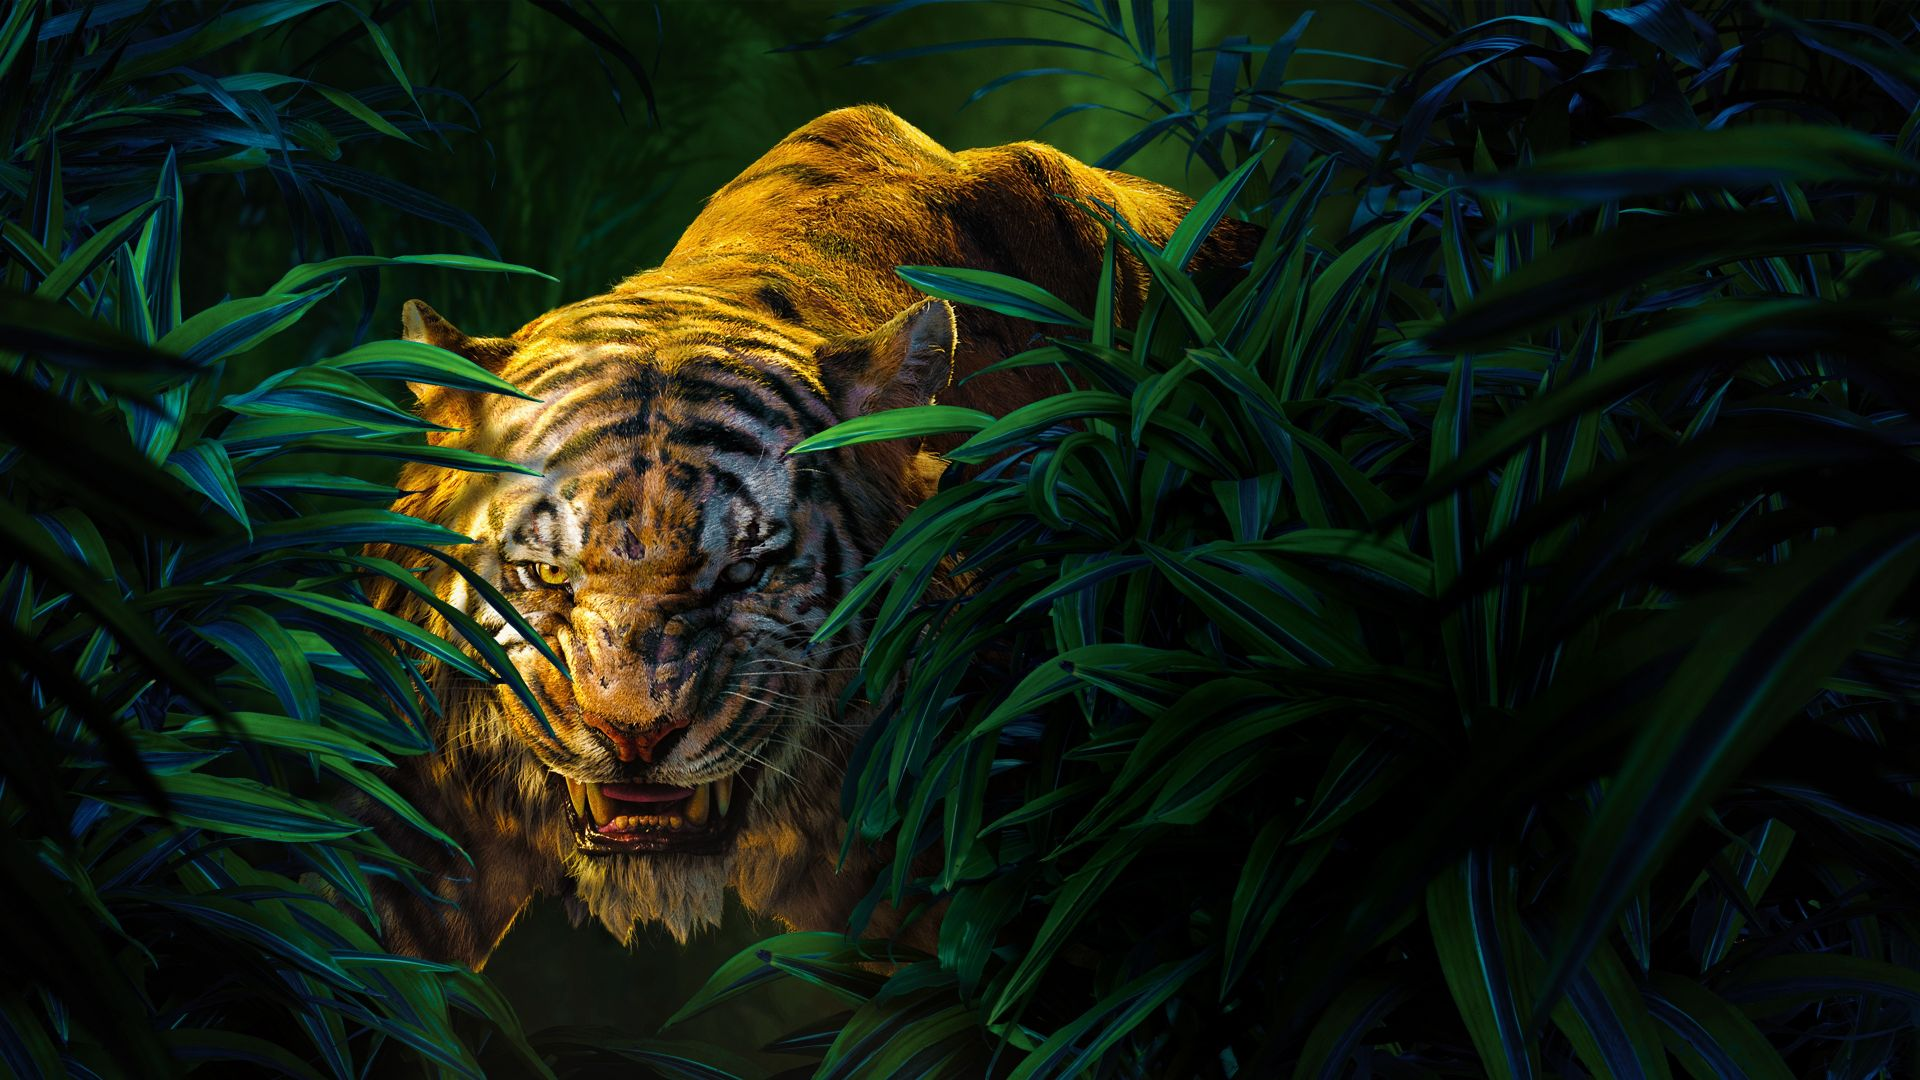 shere khan the jungle book movie, hd movies, 4k wallpapers, images